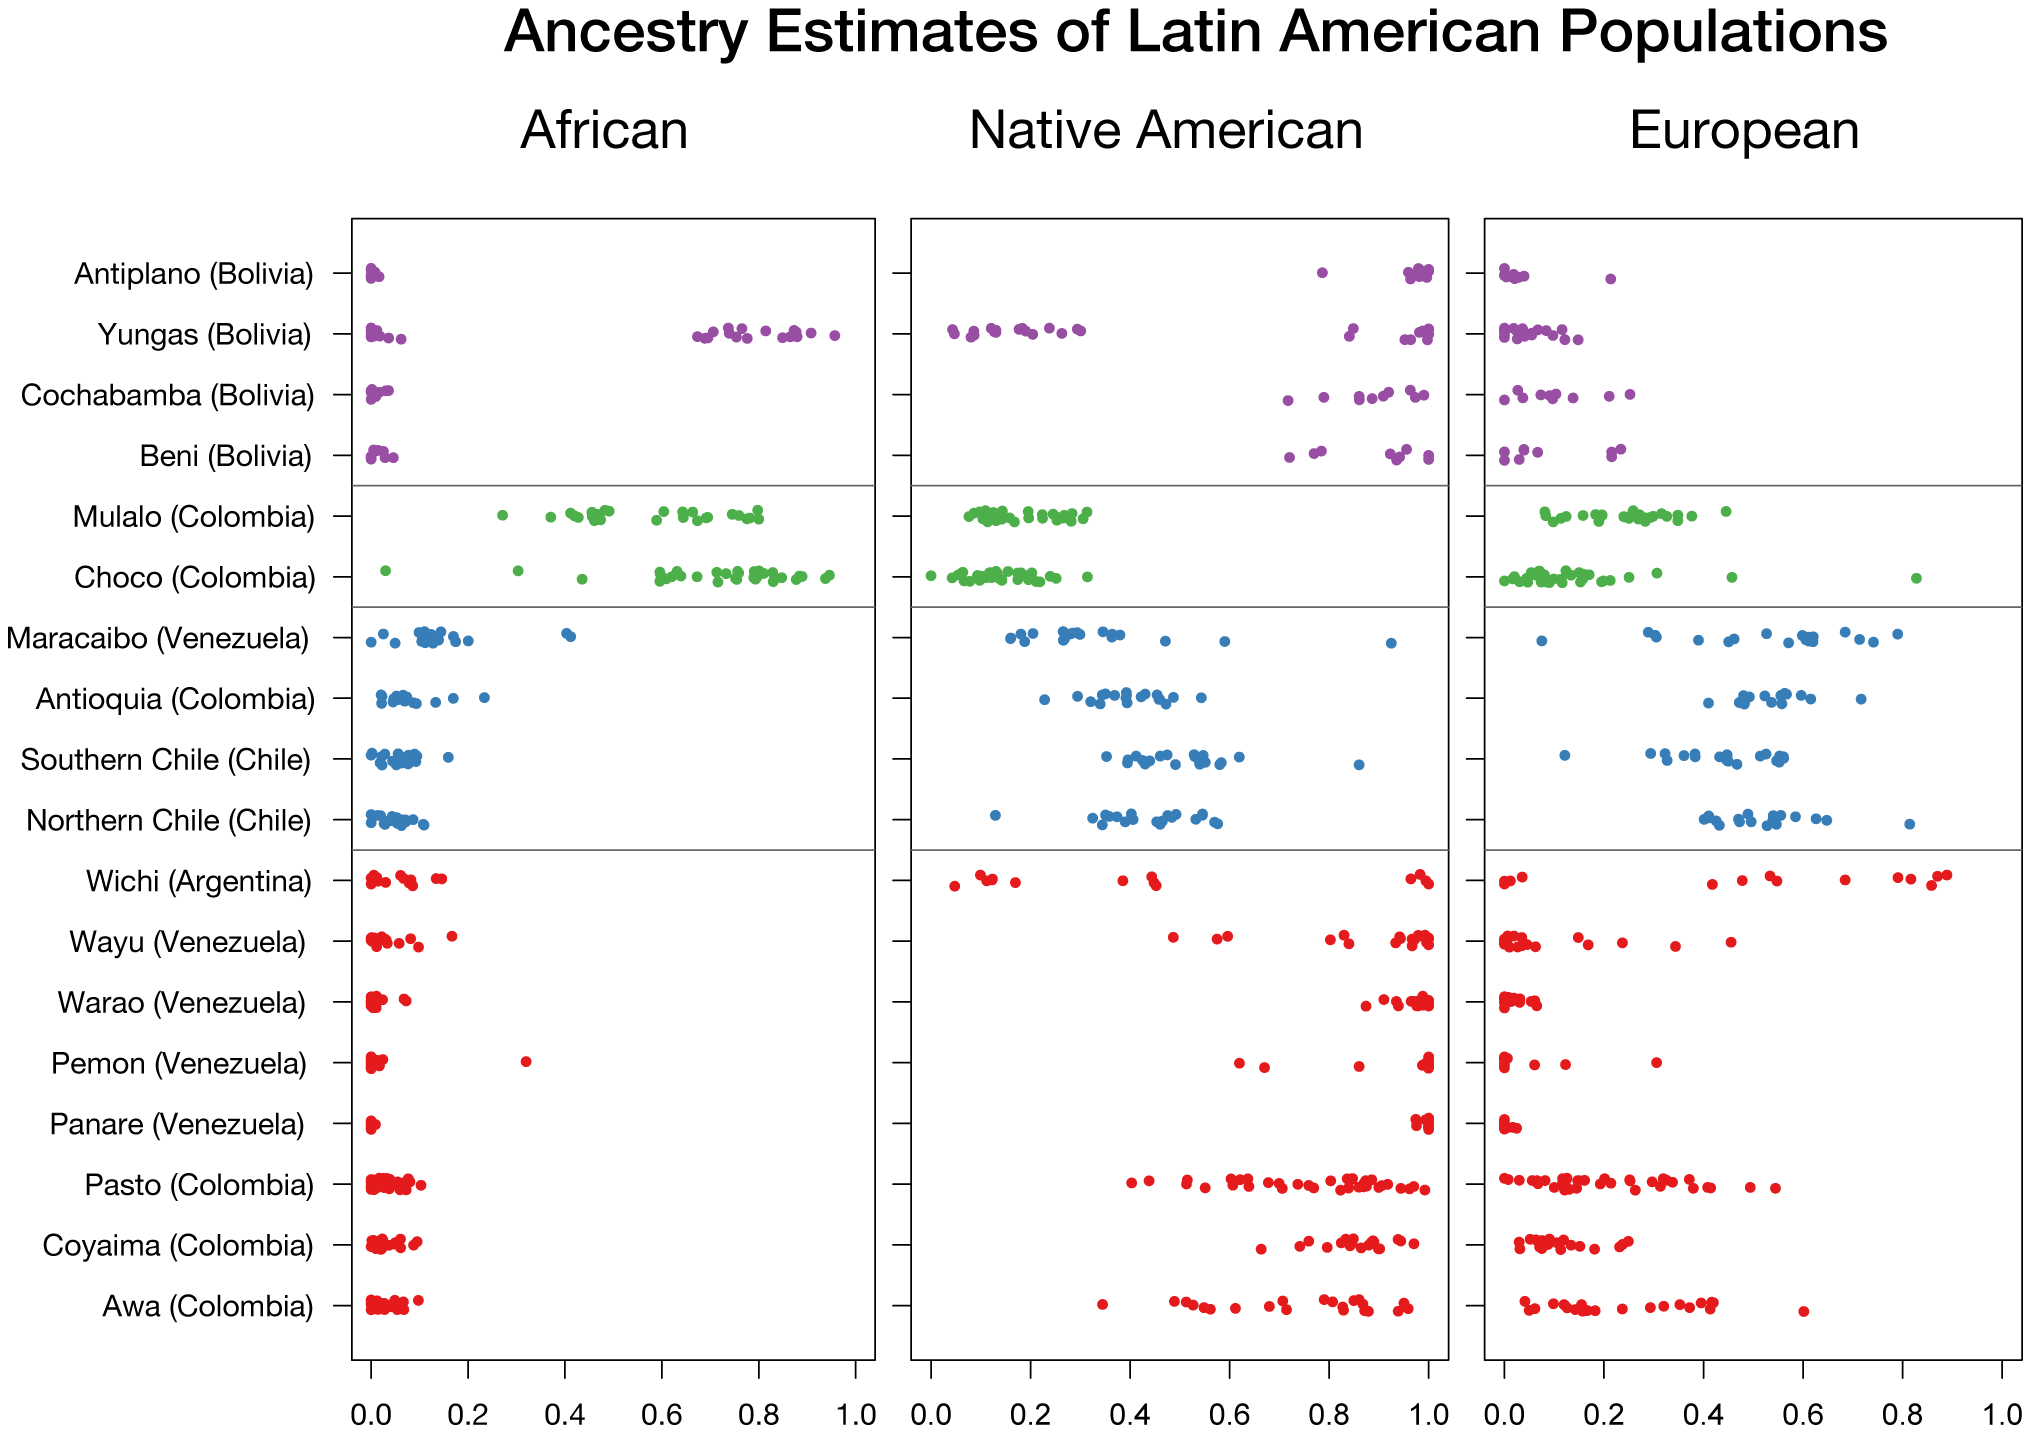 Ancestry estimates of Latin American populations.